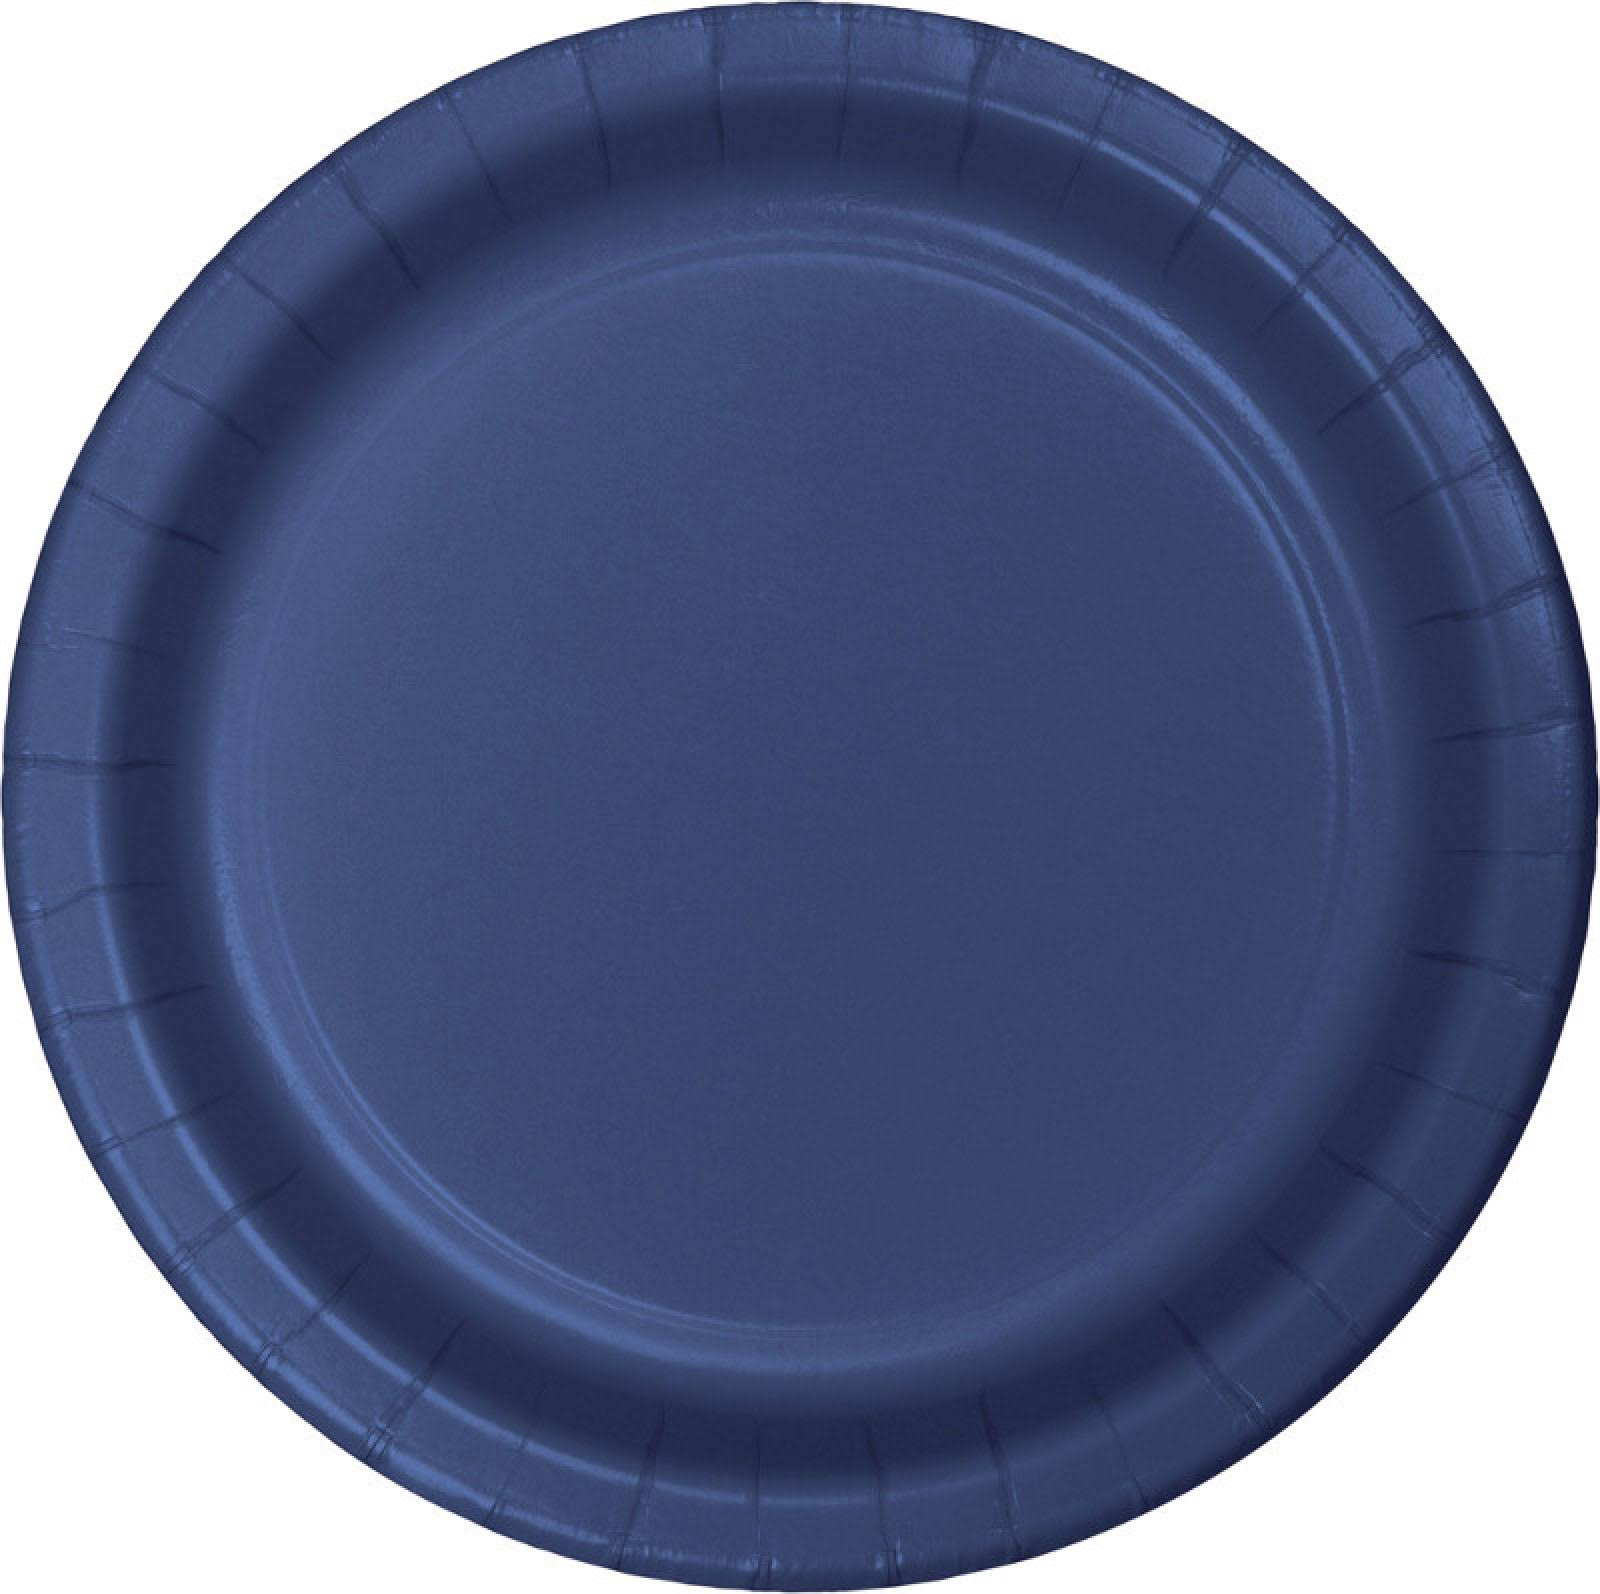 "Creative Converting Paper Plate - 24ct, 9"", Navy"